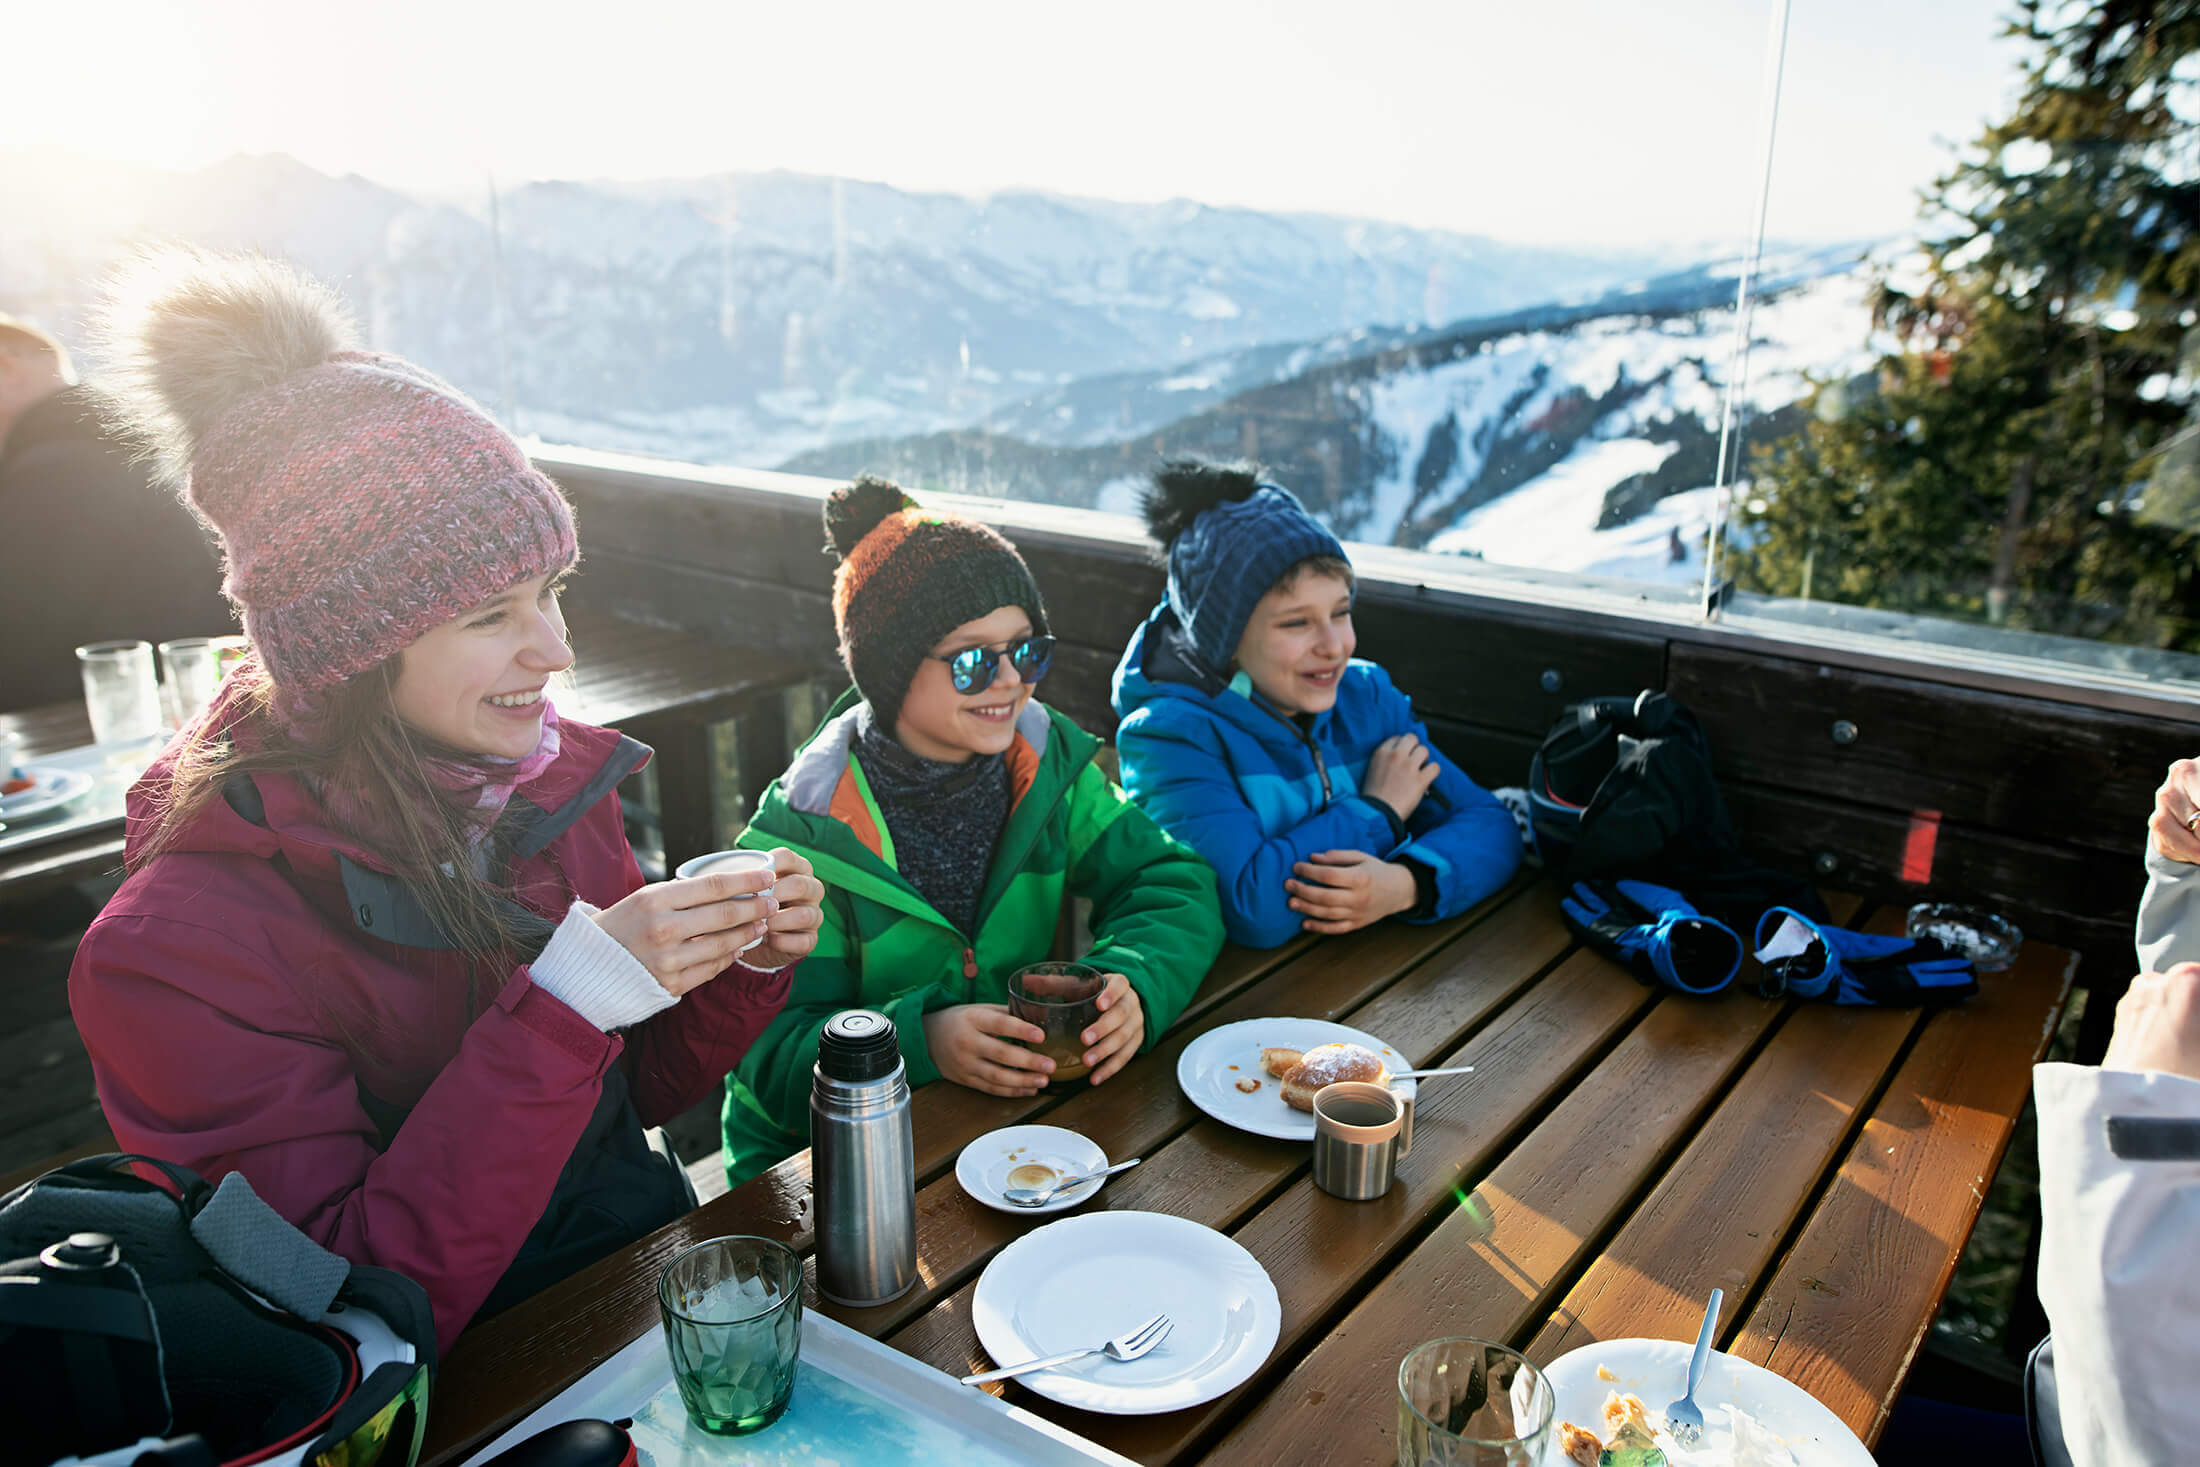 Family eating outside in the winter